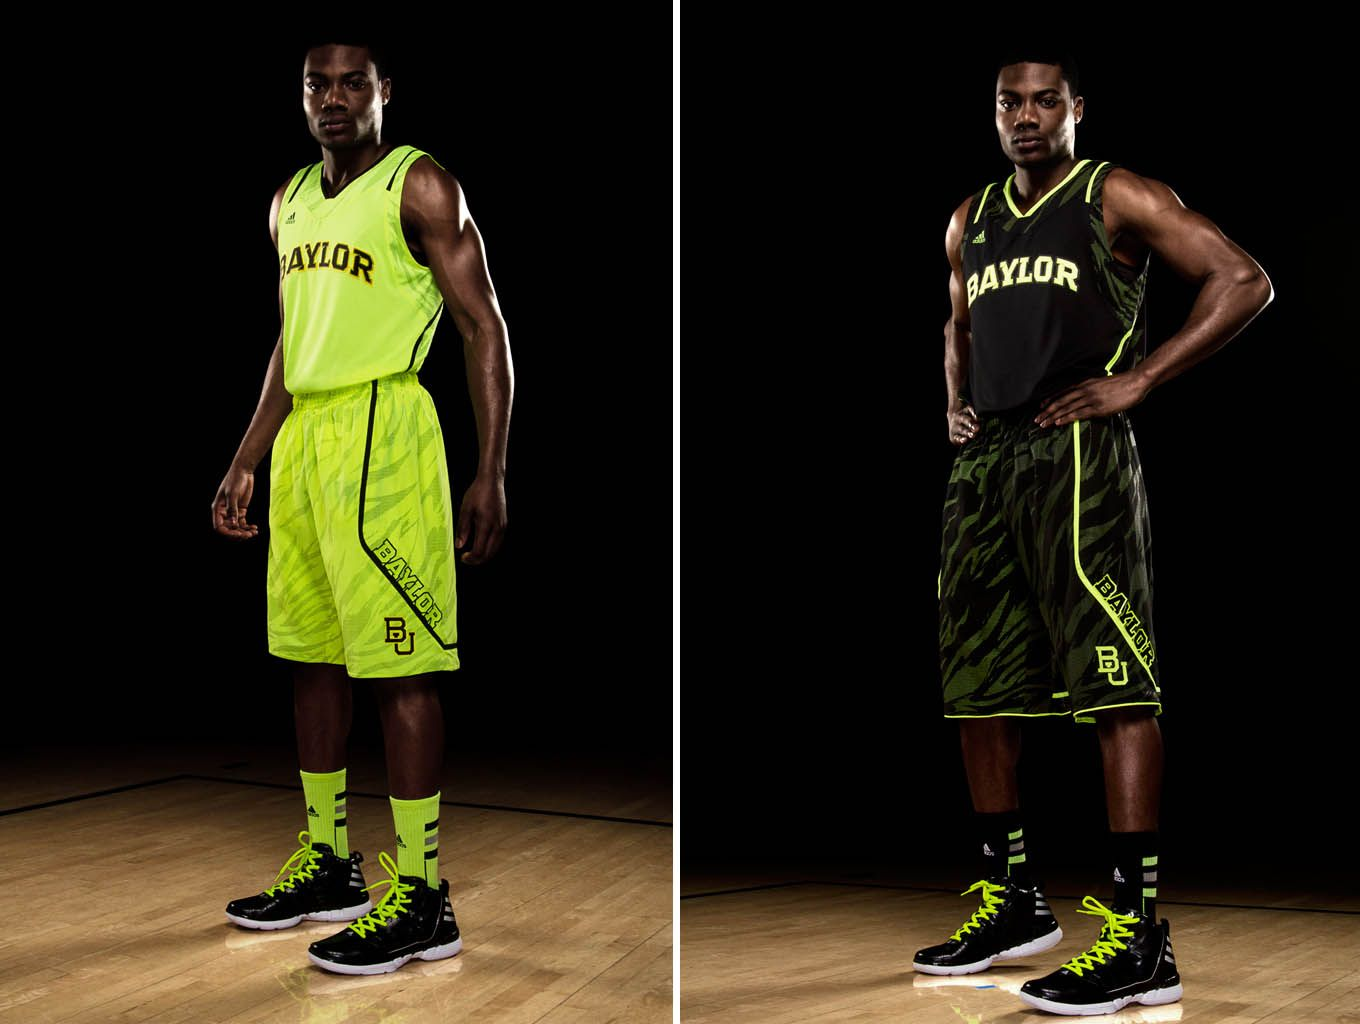 Adidas Baylor Say Their New Basketball Jersey Camouflage Design Is Inspired By Team Basketball Uniforms Basketball Uniforms Design College Basketball Uniforms